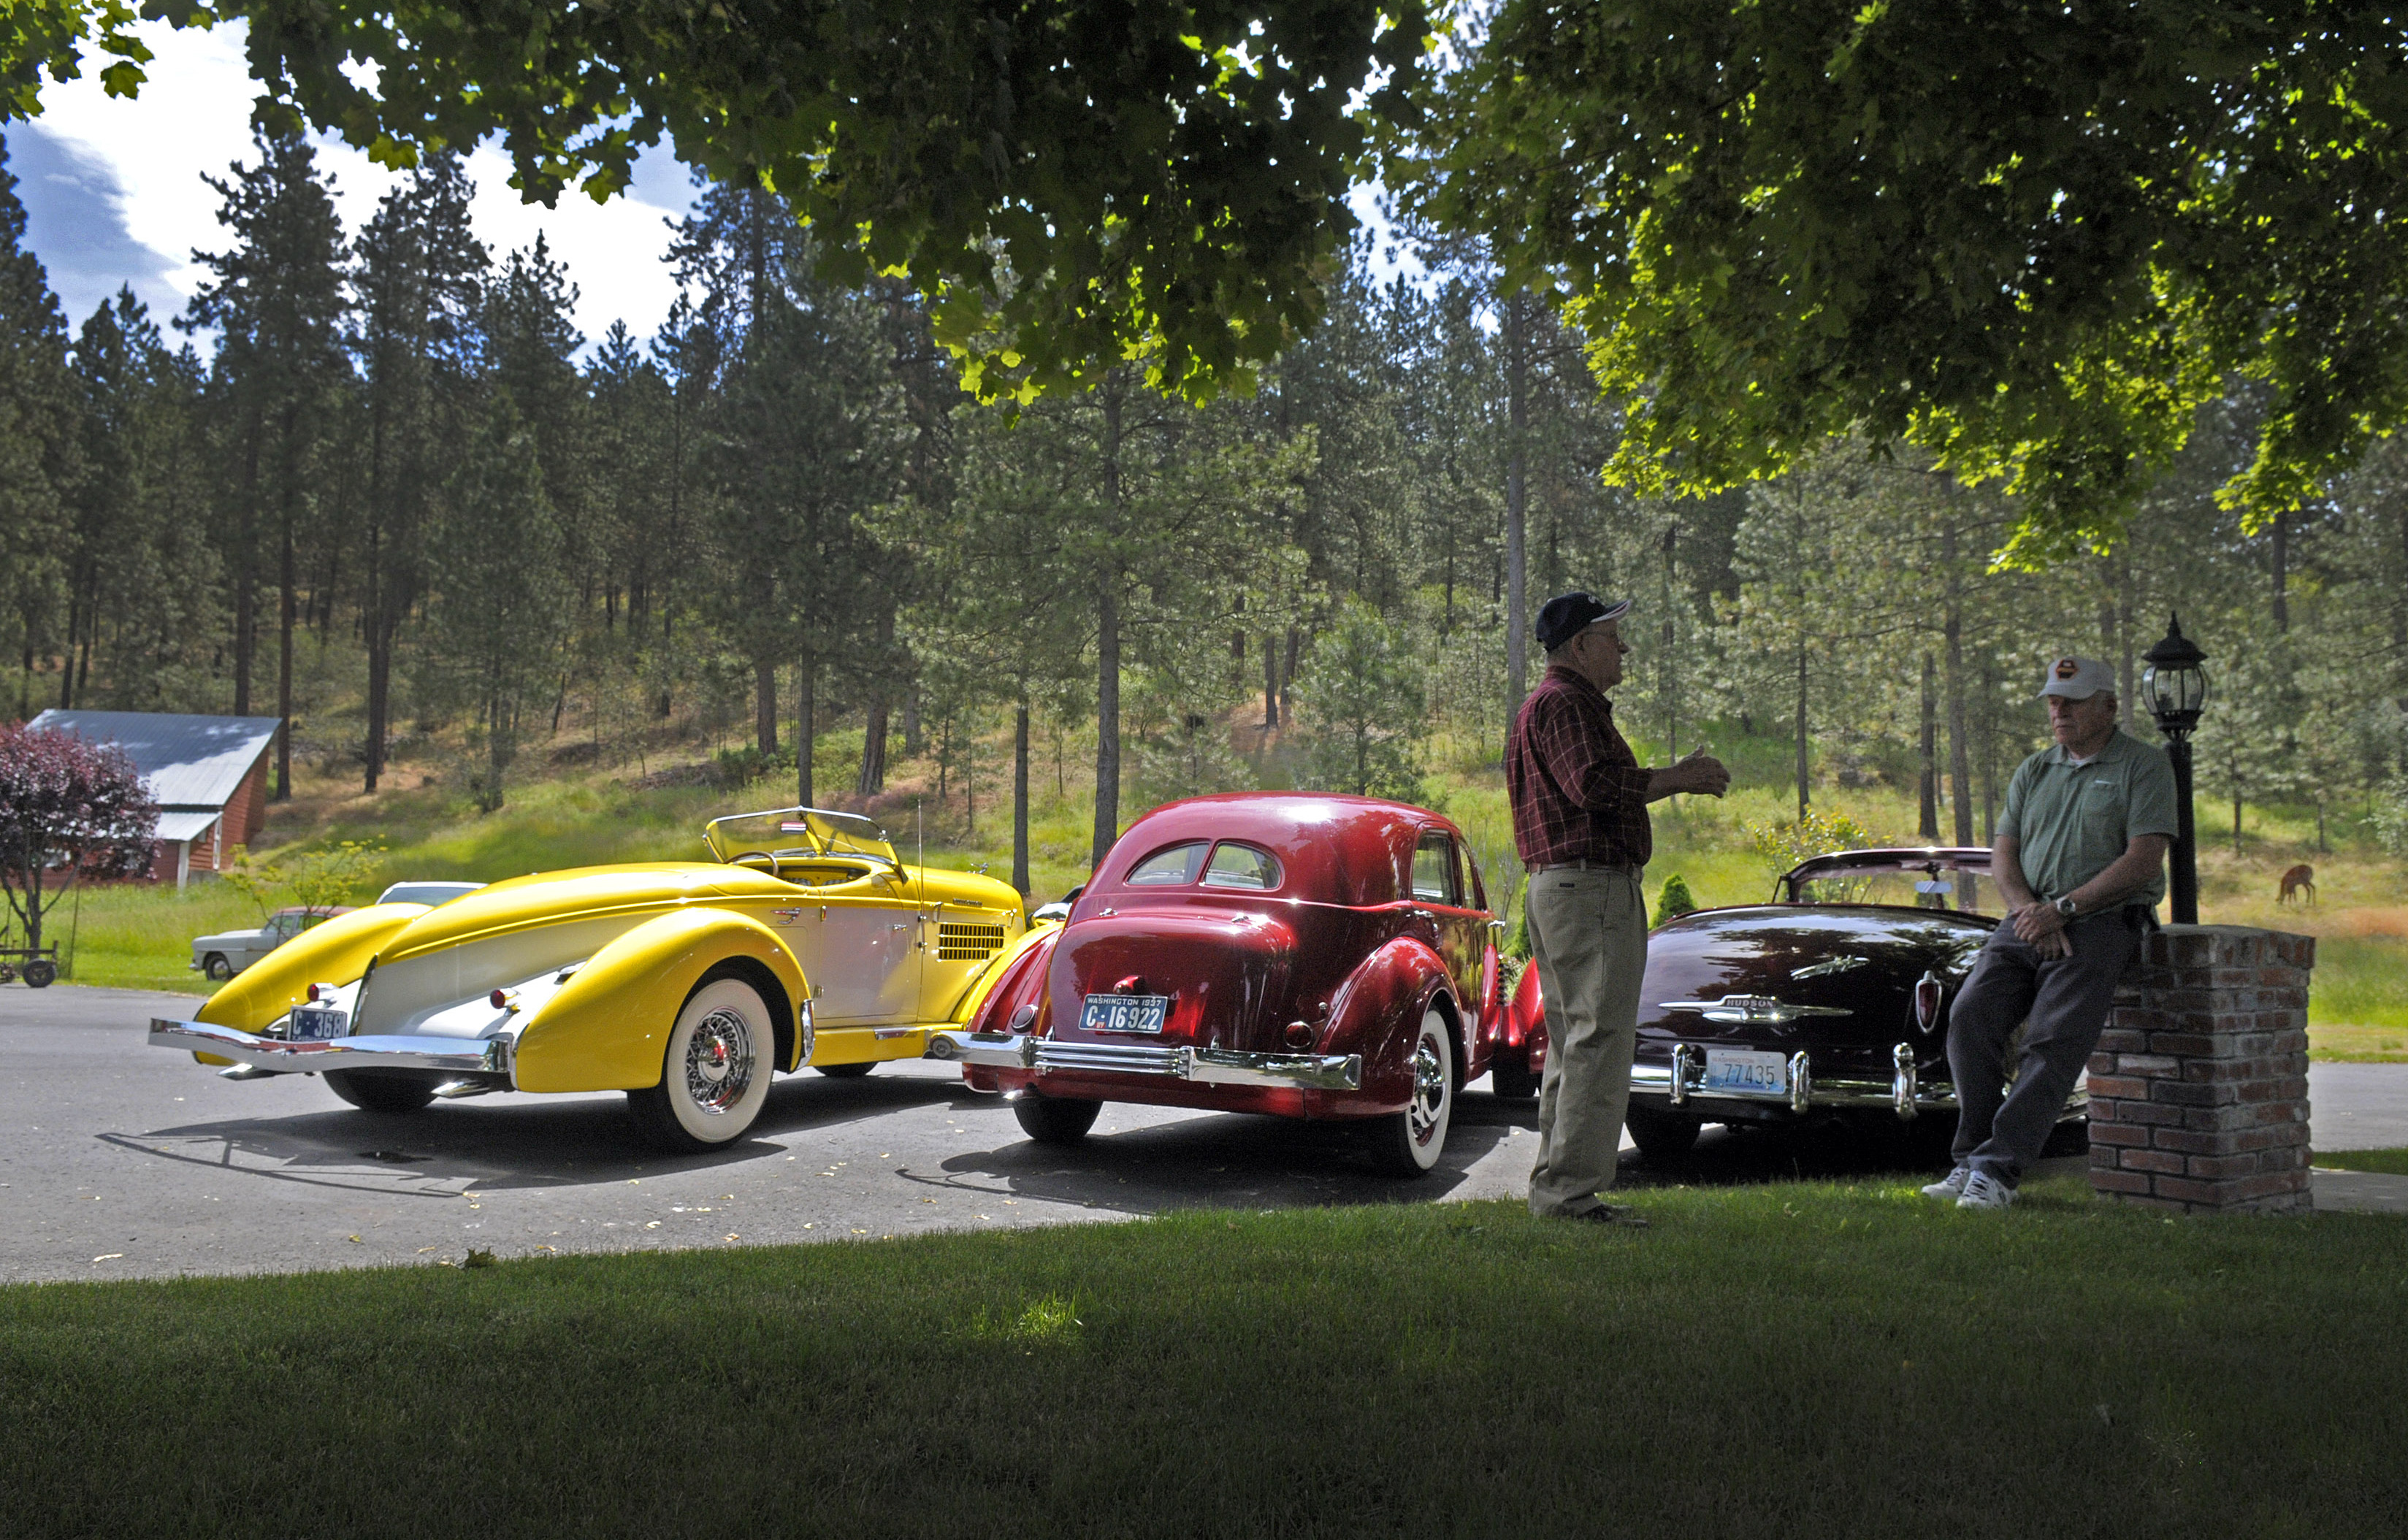 Clubs Have Taken Shine To Old Cars For Years The SpokesmanReview - Car meets near me today